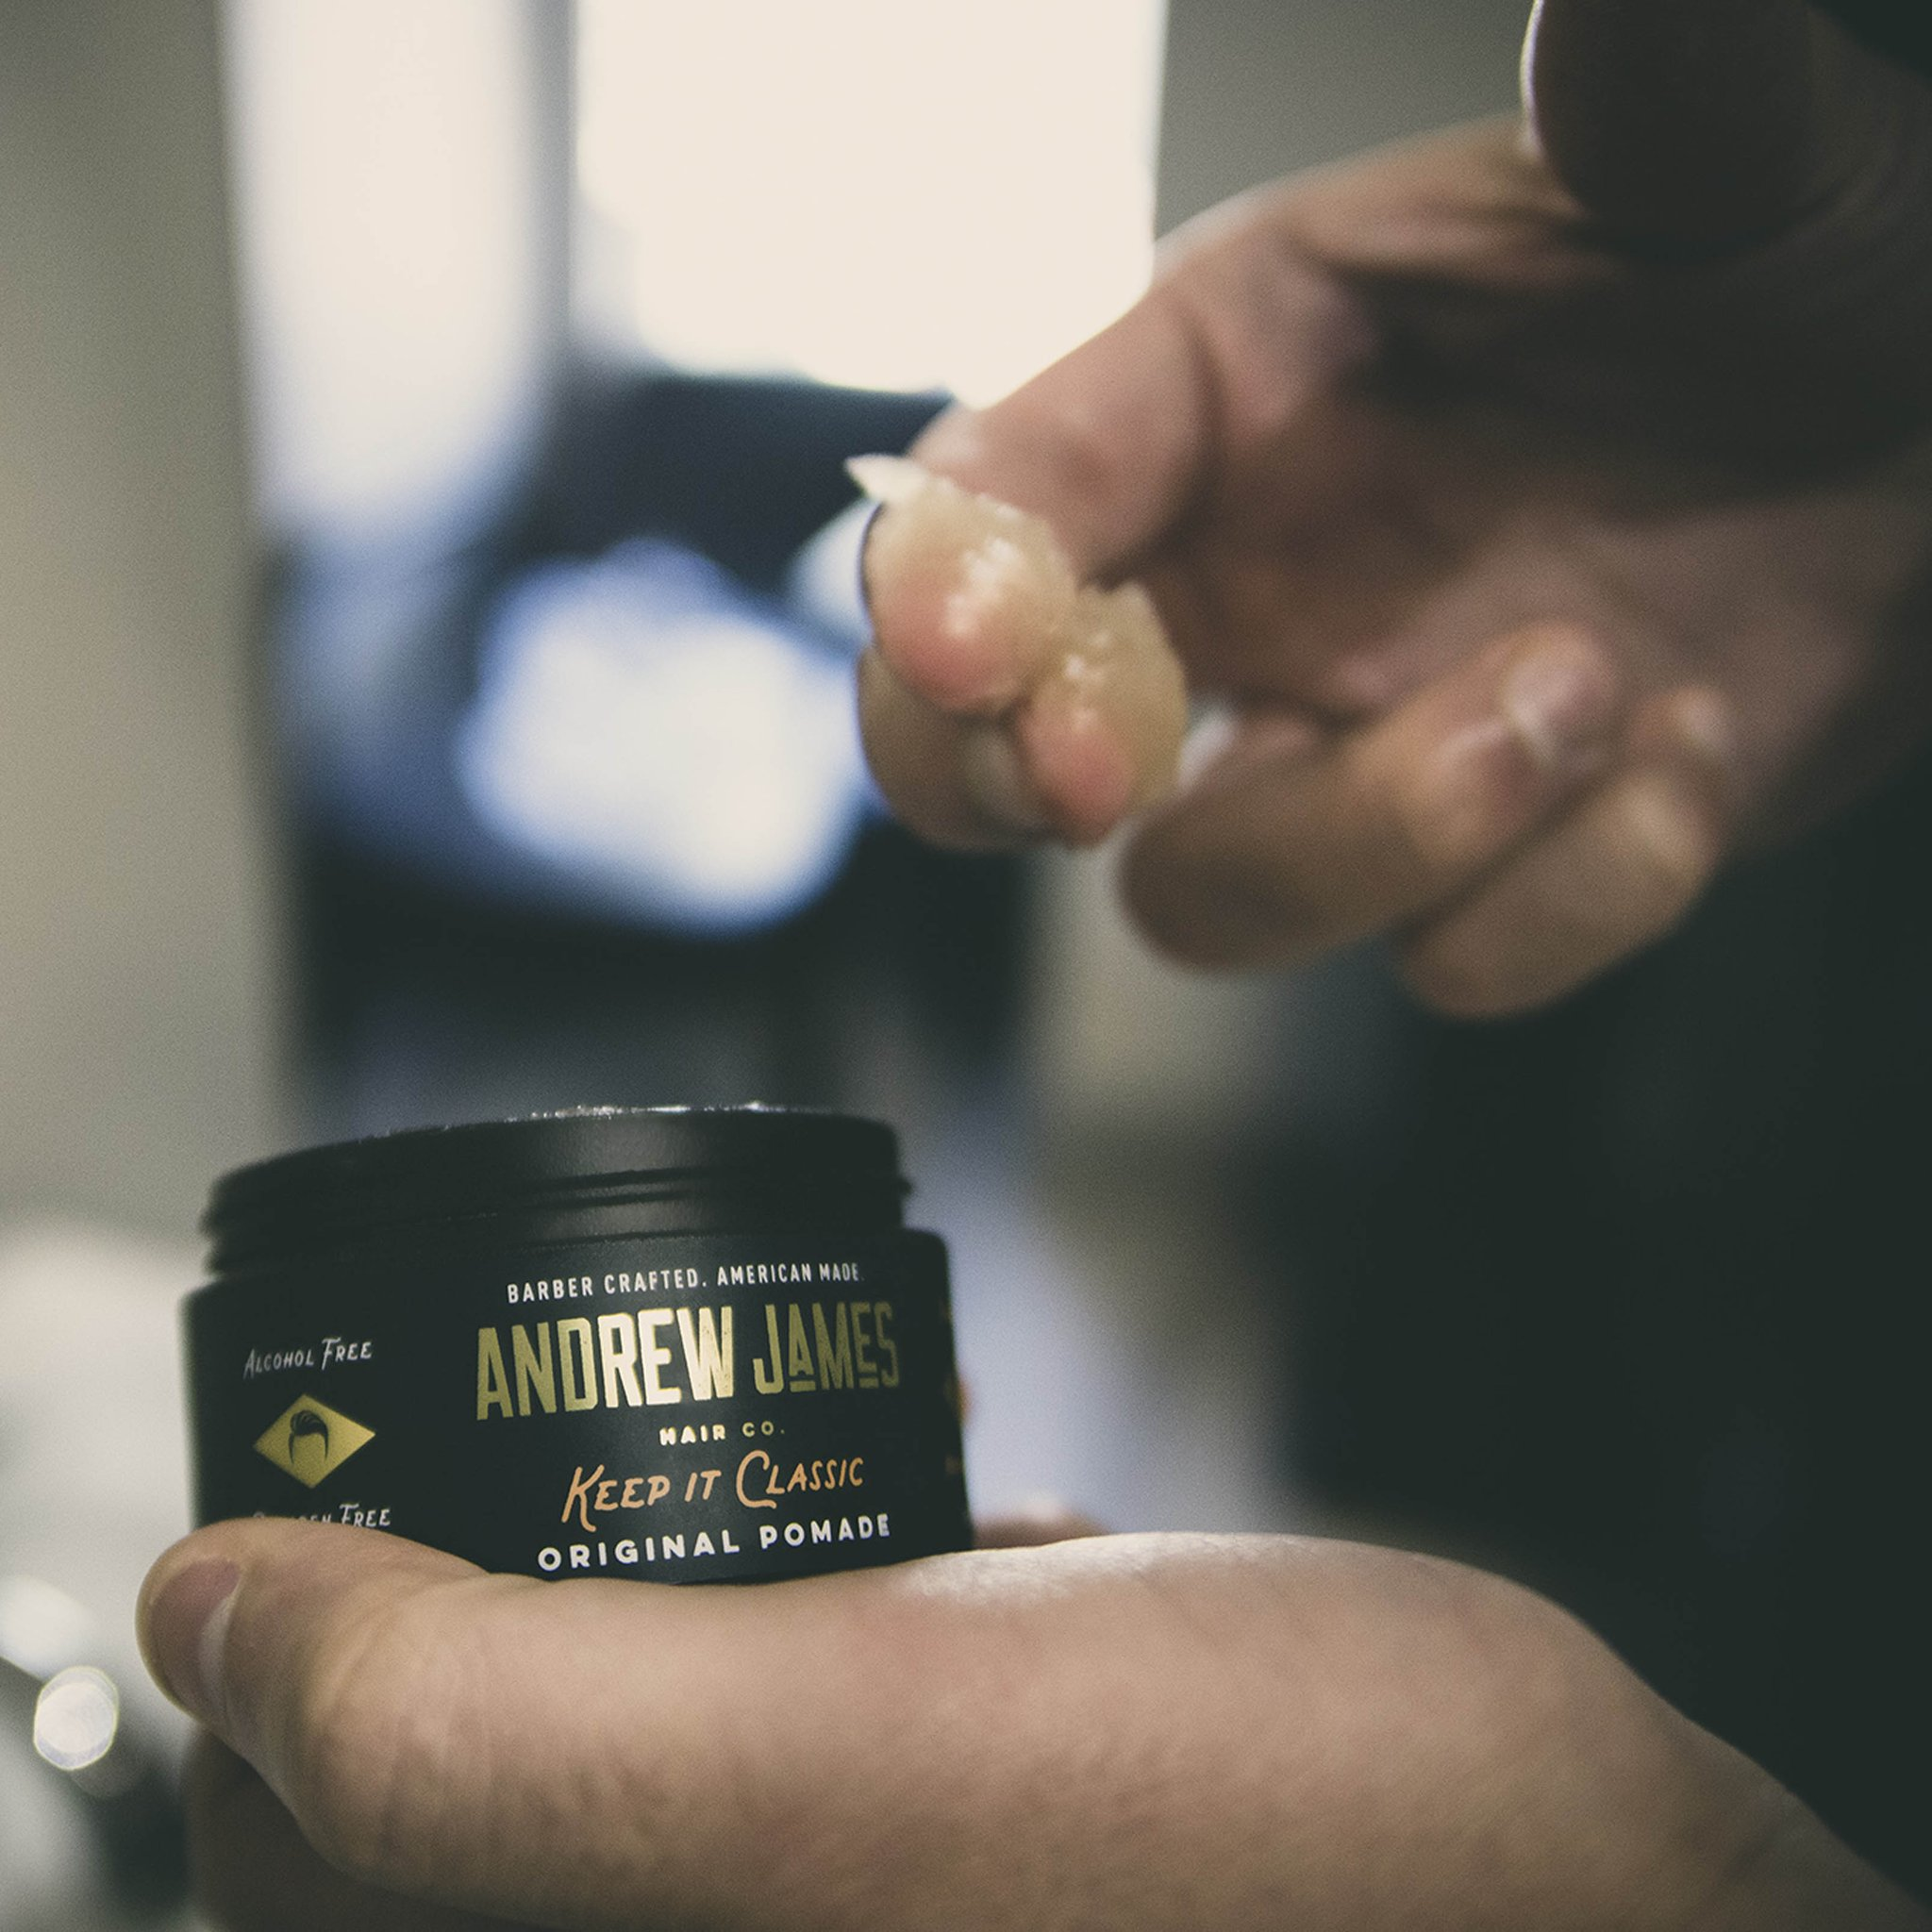 Pomade-Types-&-Guide-on-Usage